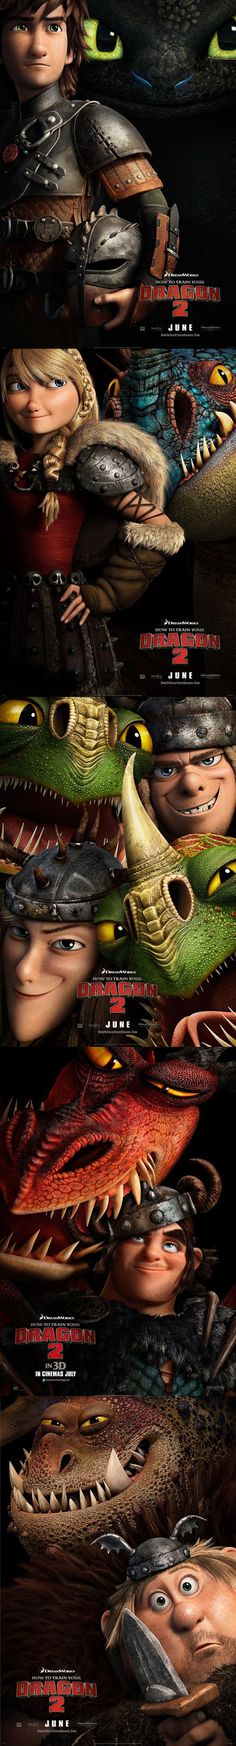 - How to Train Your Dragon 2